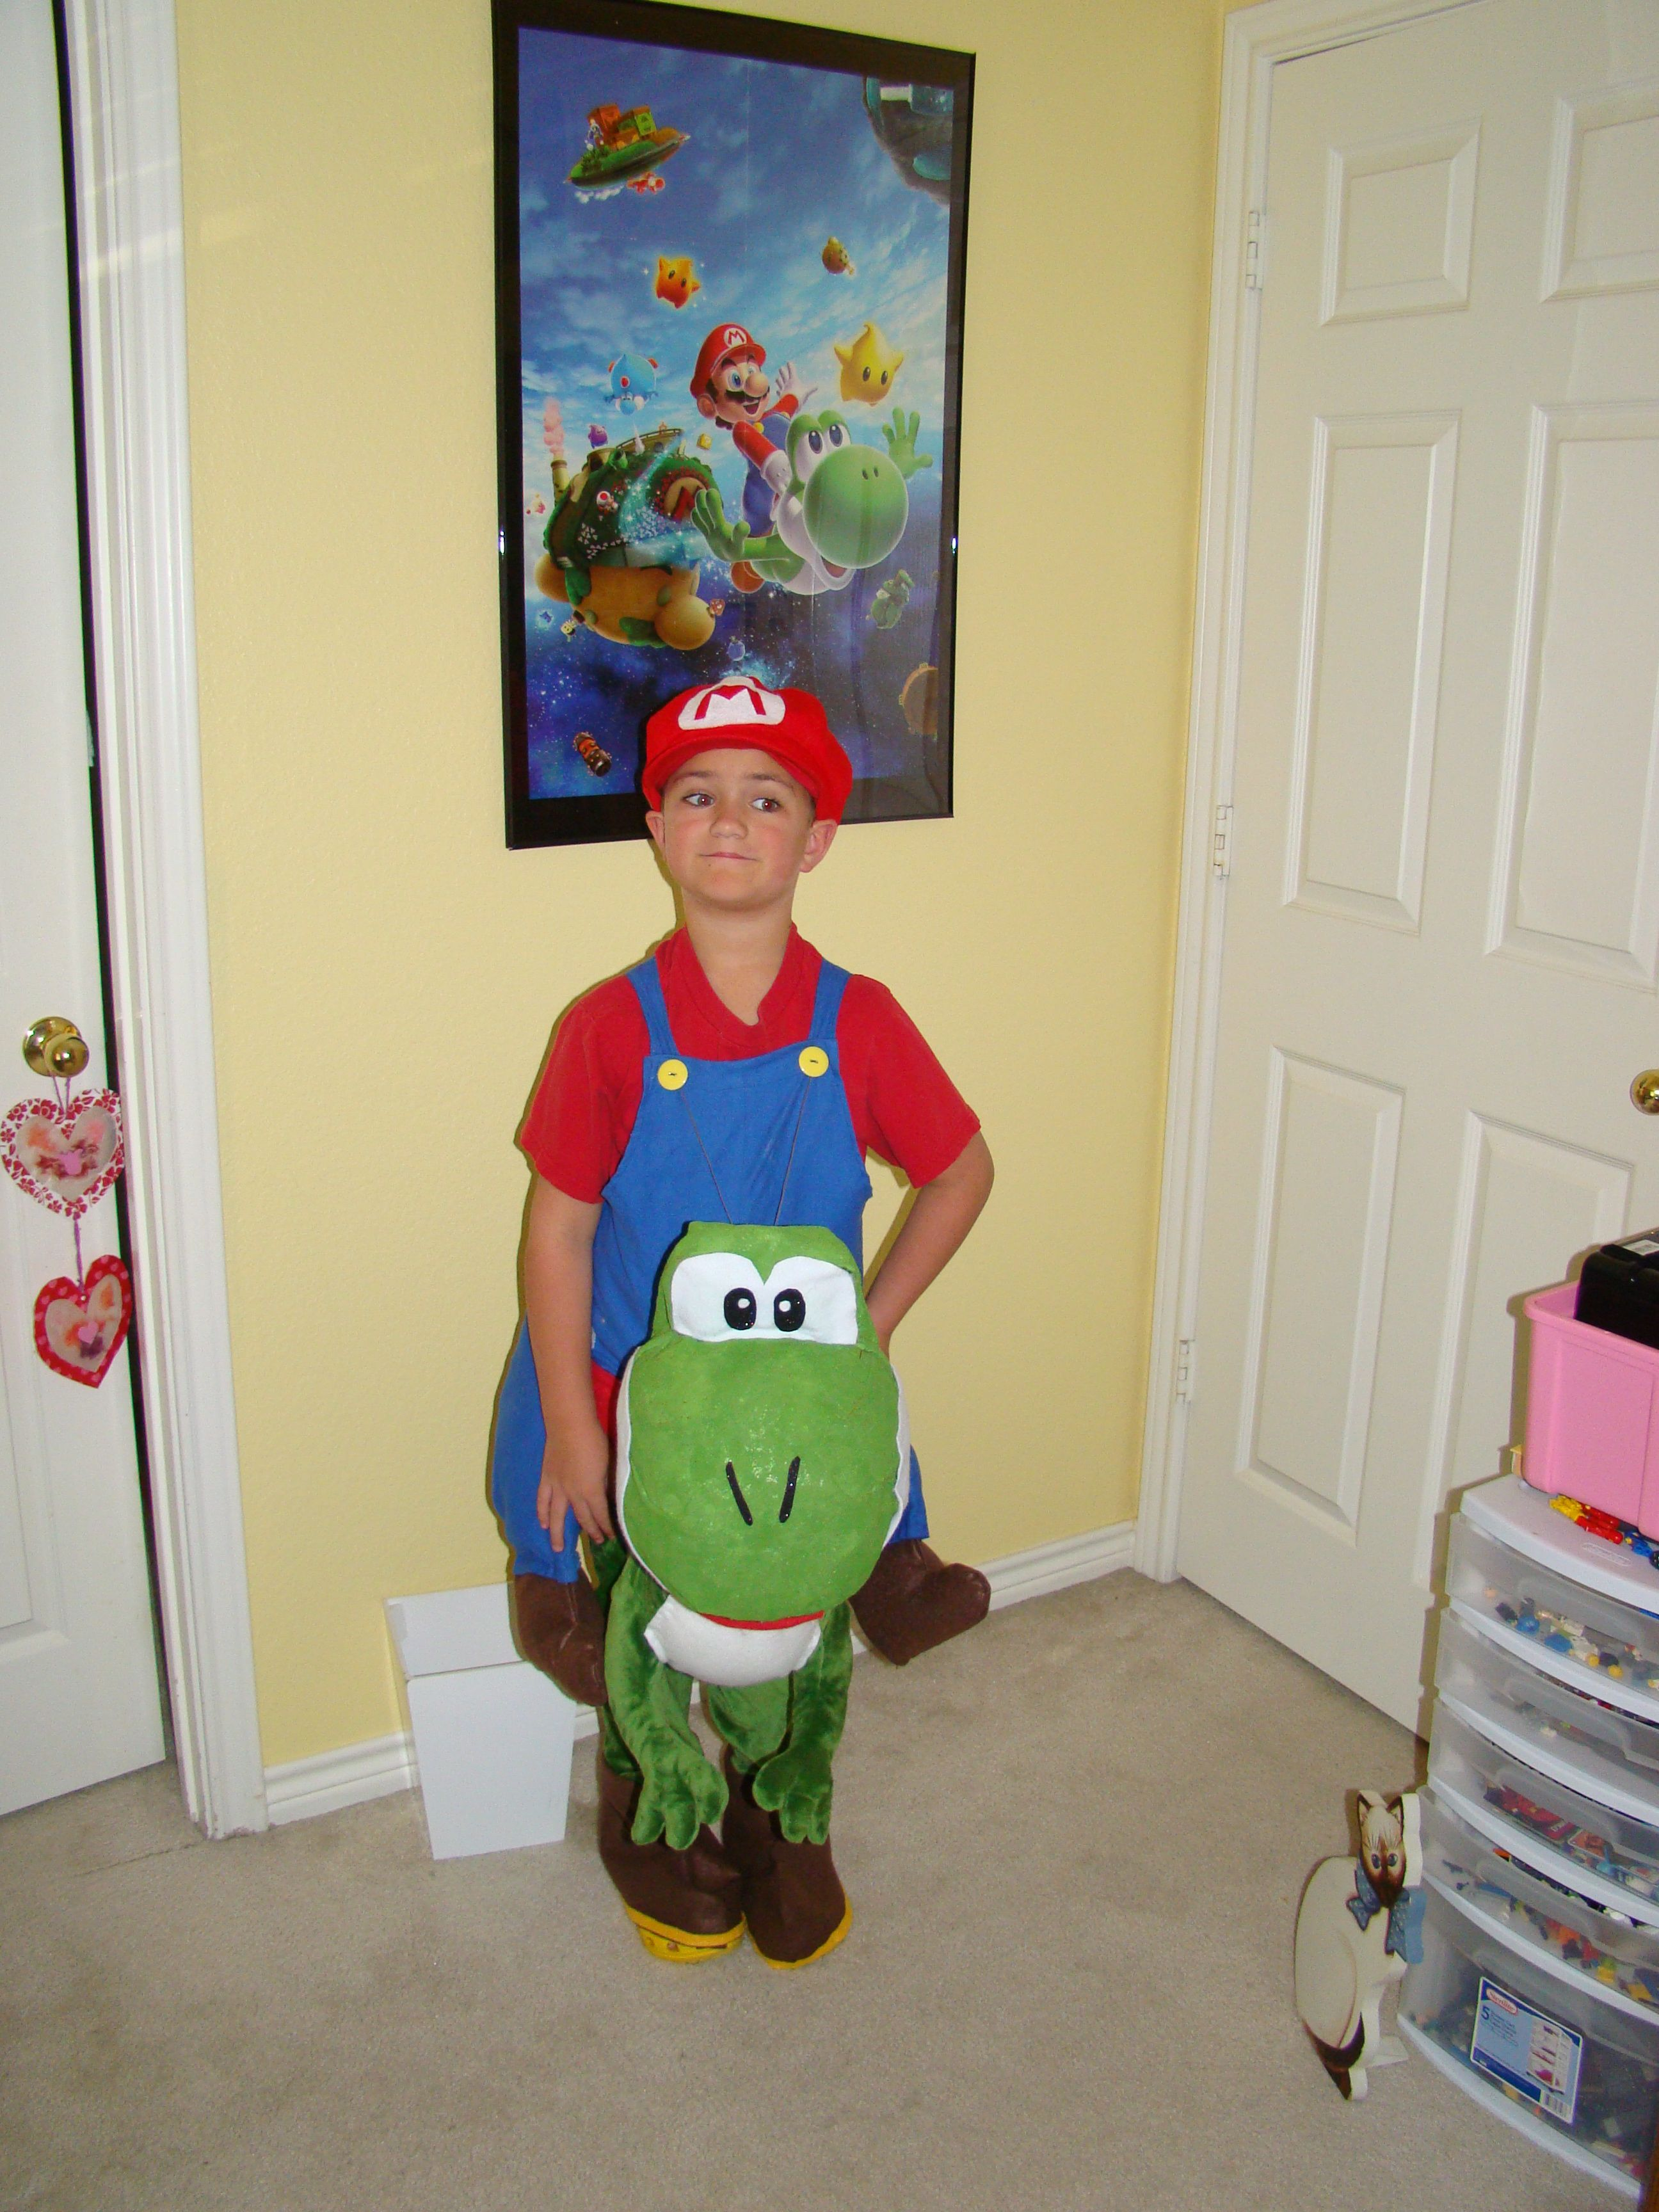 b76c63c511130 Mario riding Yoshi costume   Things I have made/tried/done in 2019 ...